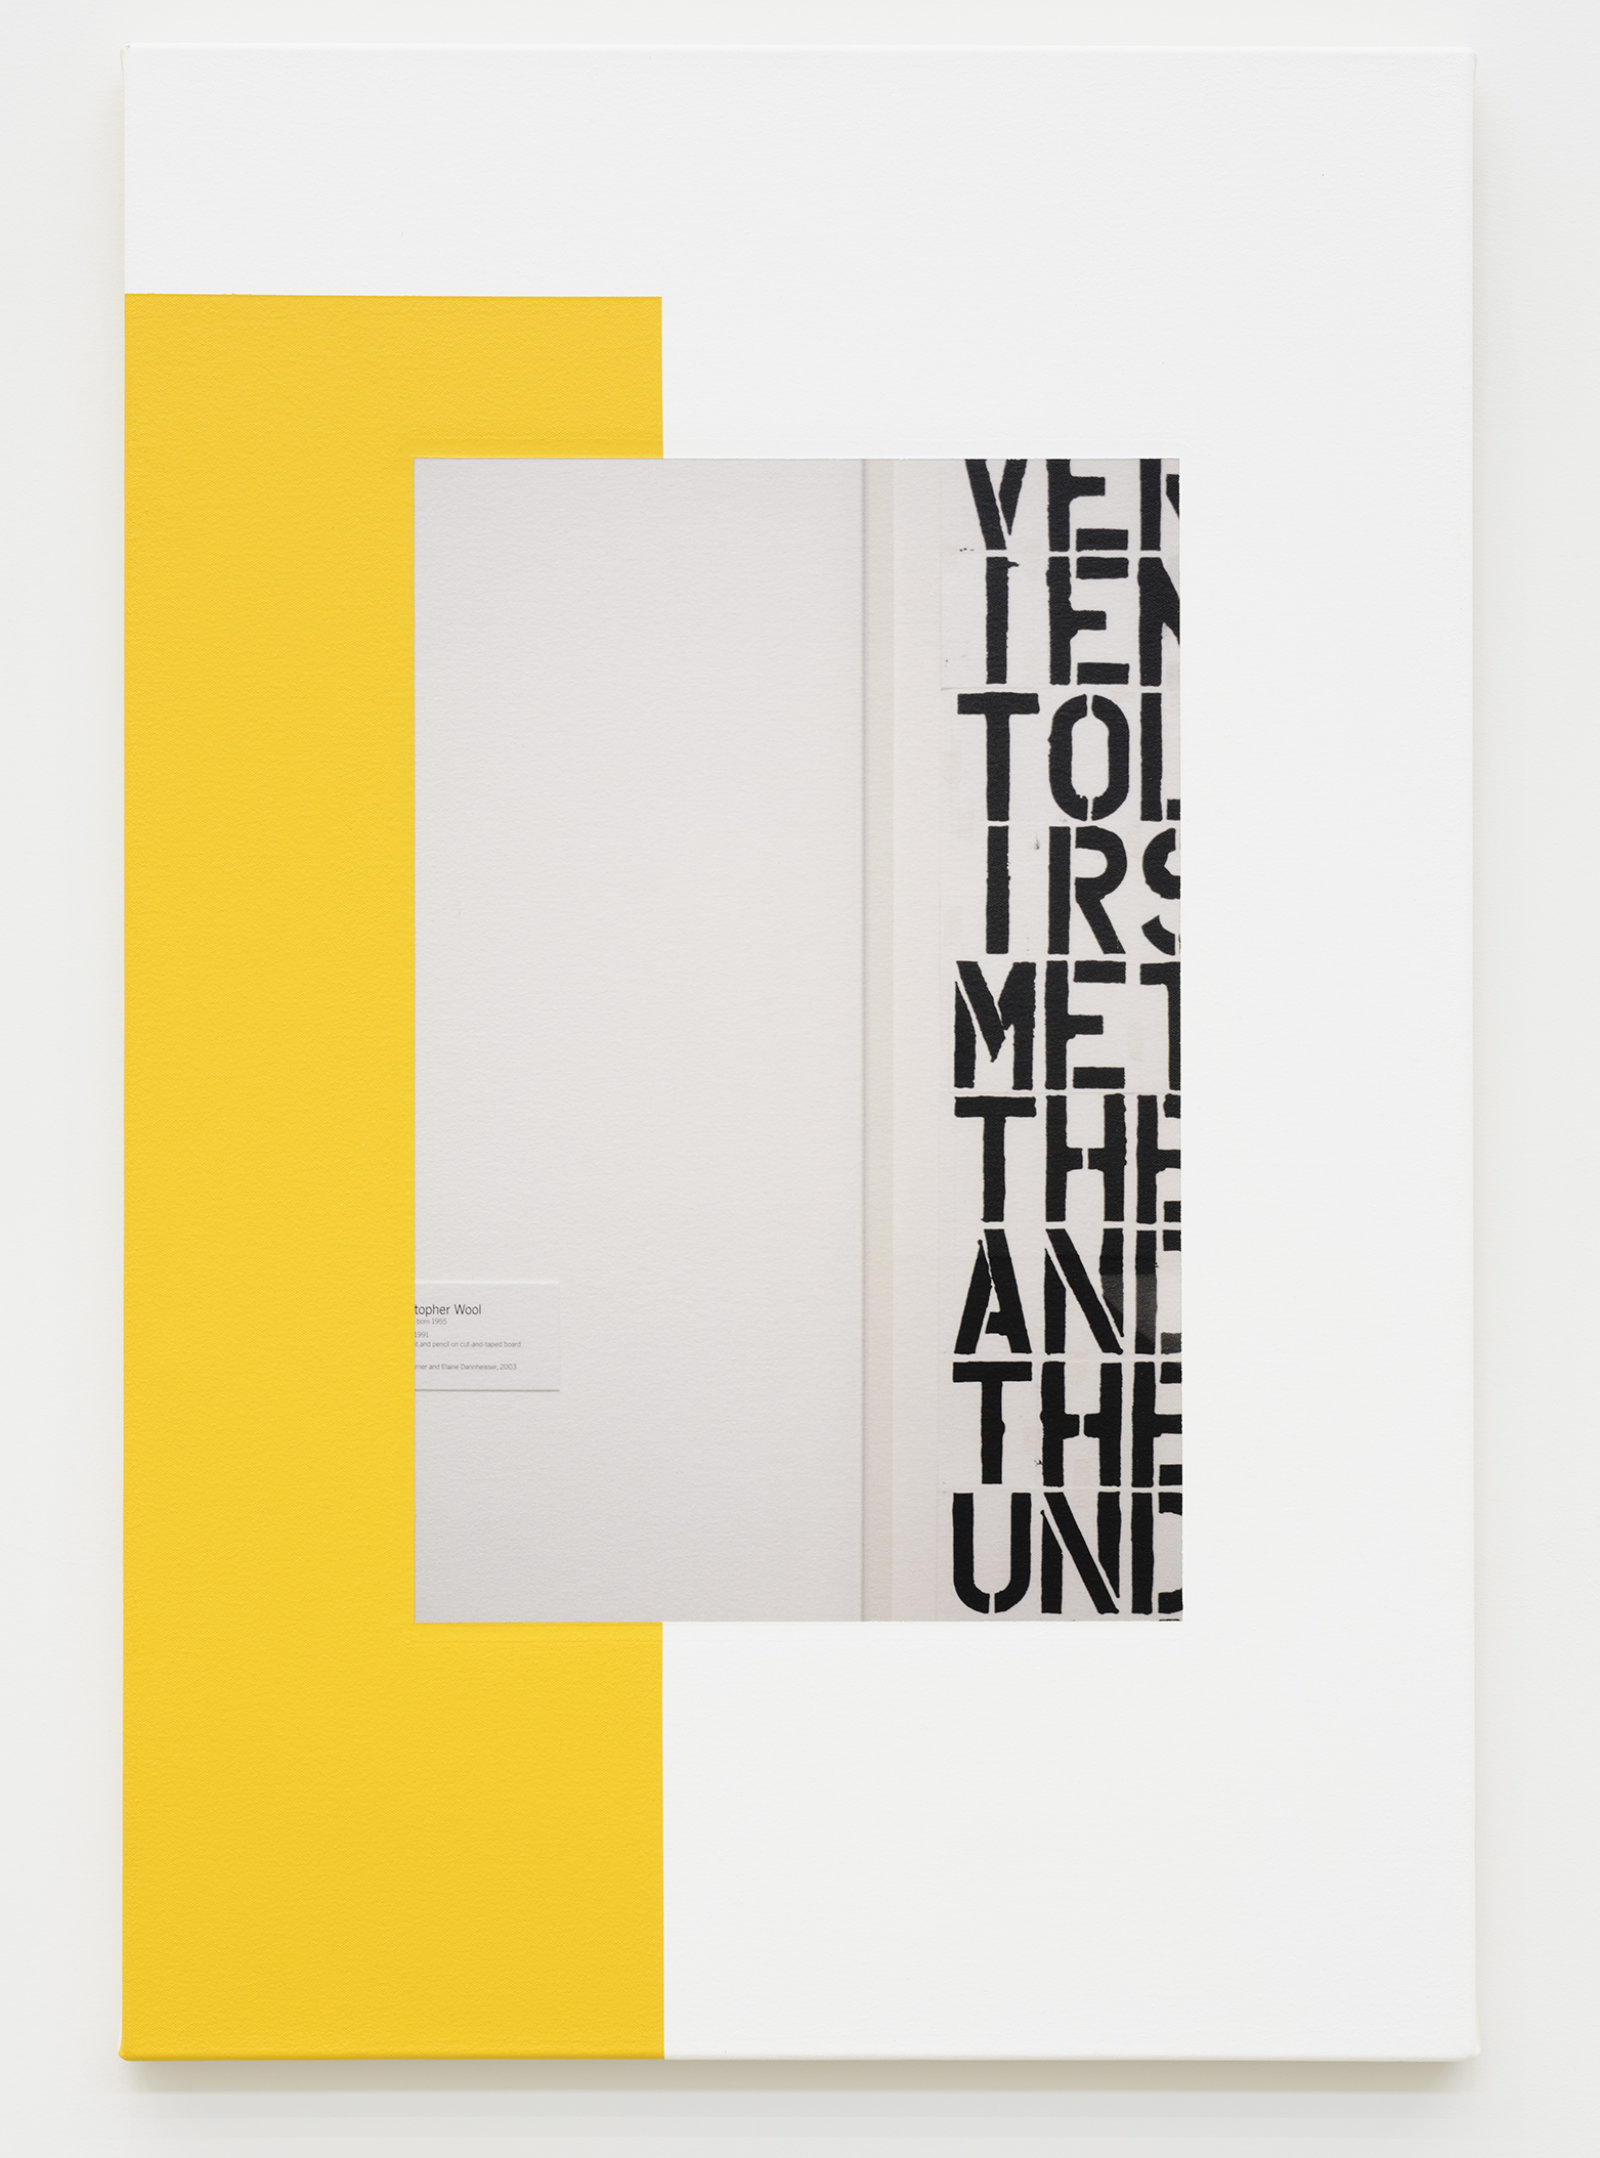 Ian Wallace, Abstract Composition (with Christopher Wool), 2011, photolaminate with acrylic on canvas, 36 x 24 in. (91 x 61 cm) by Ian Wallace